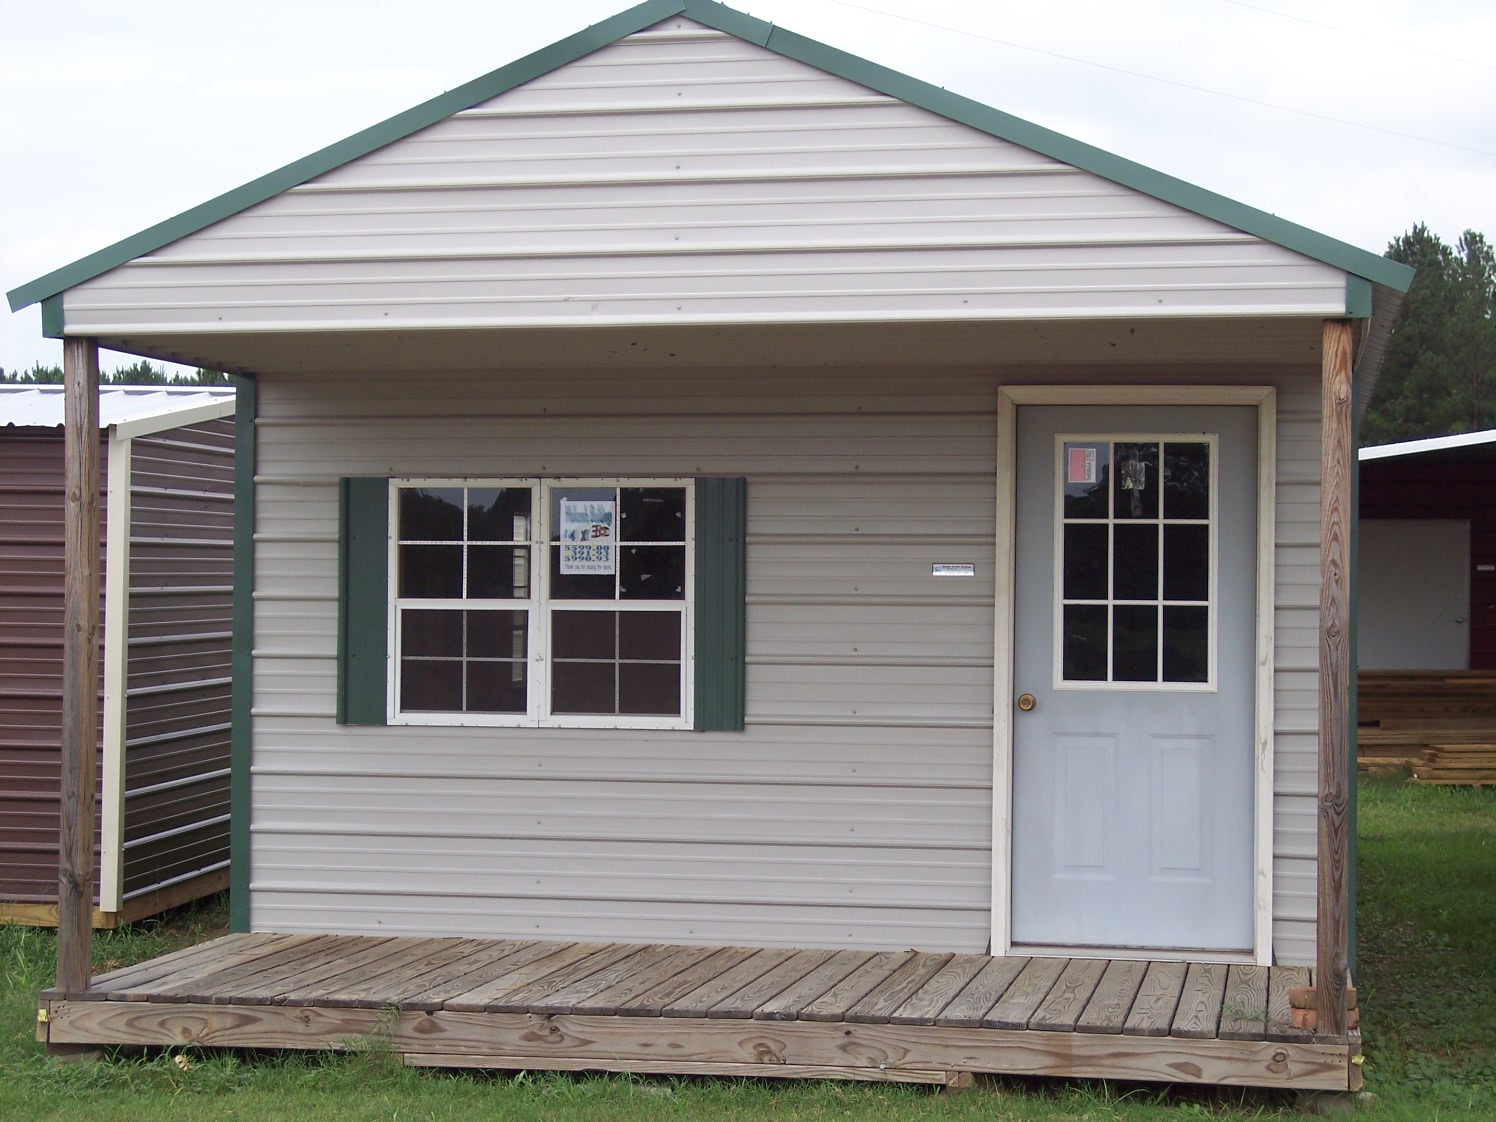 Storage Sheds With Front Porches Image